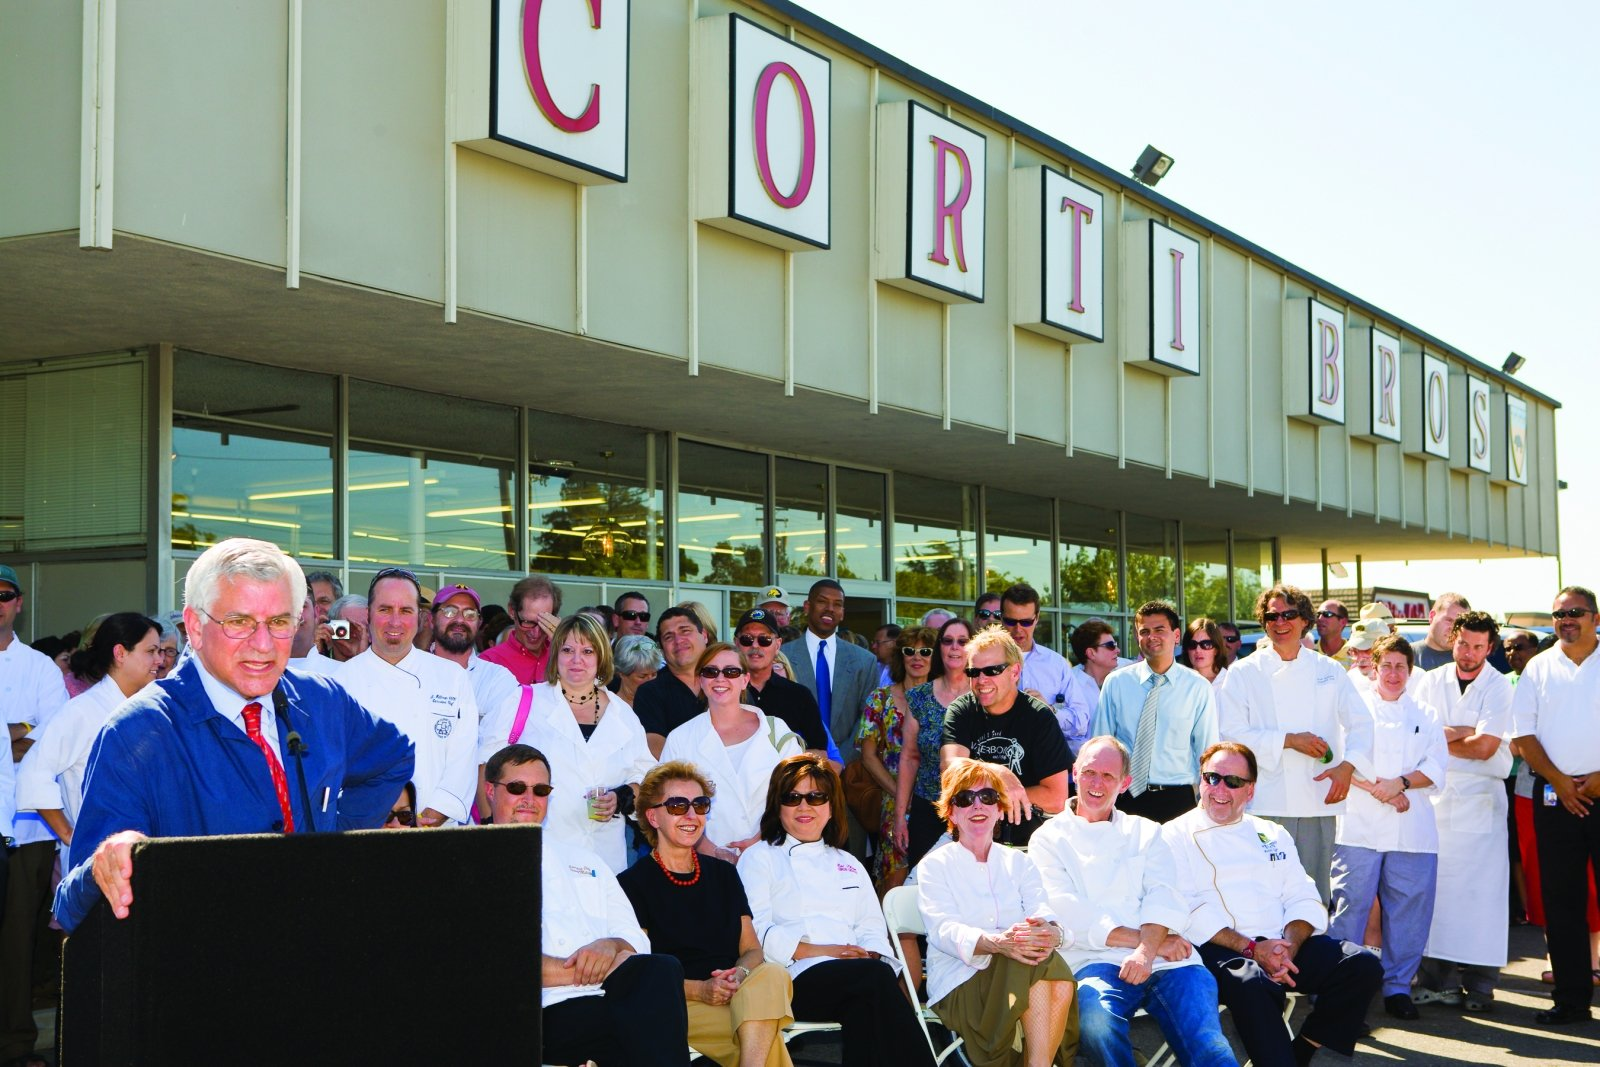 Many of the city's top chefs came out to support Corti in 2008 after the lease on his store was threatened. (Photo by Marc Thomas Kallweit)